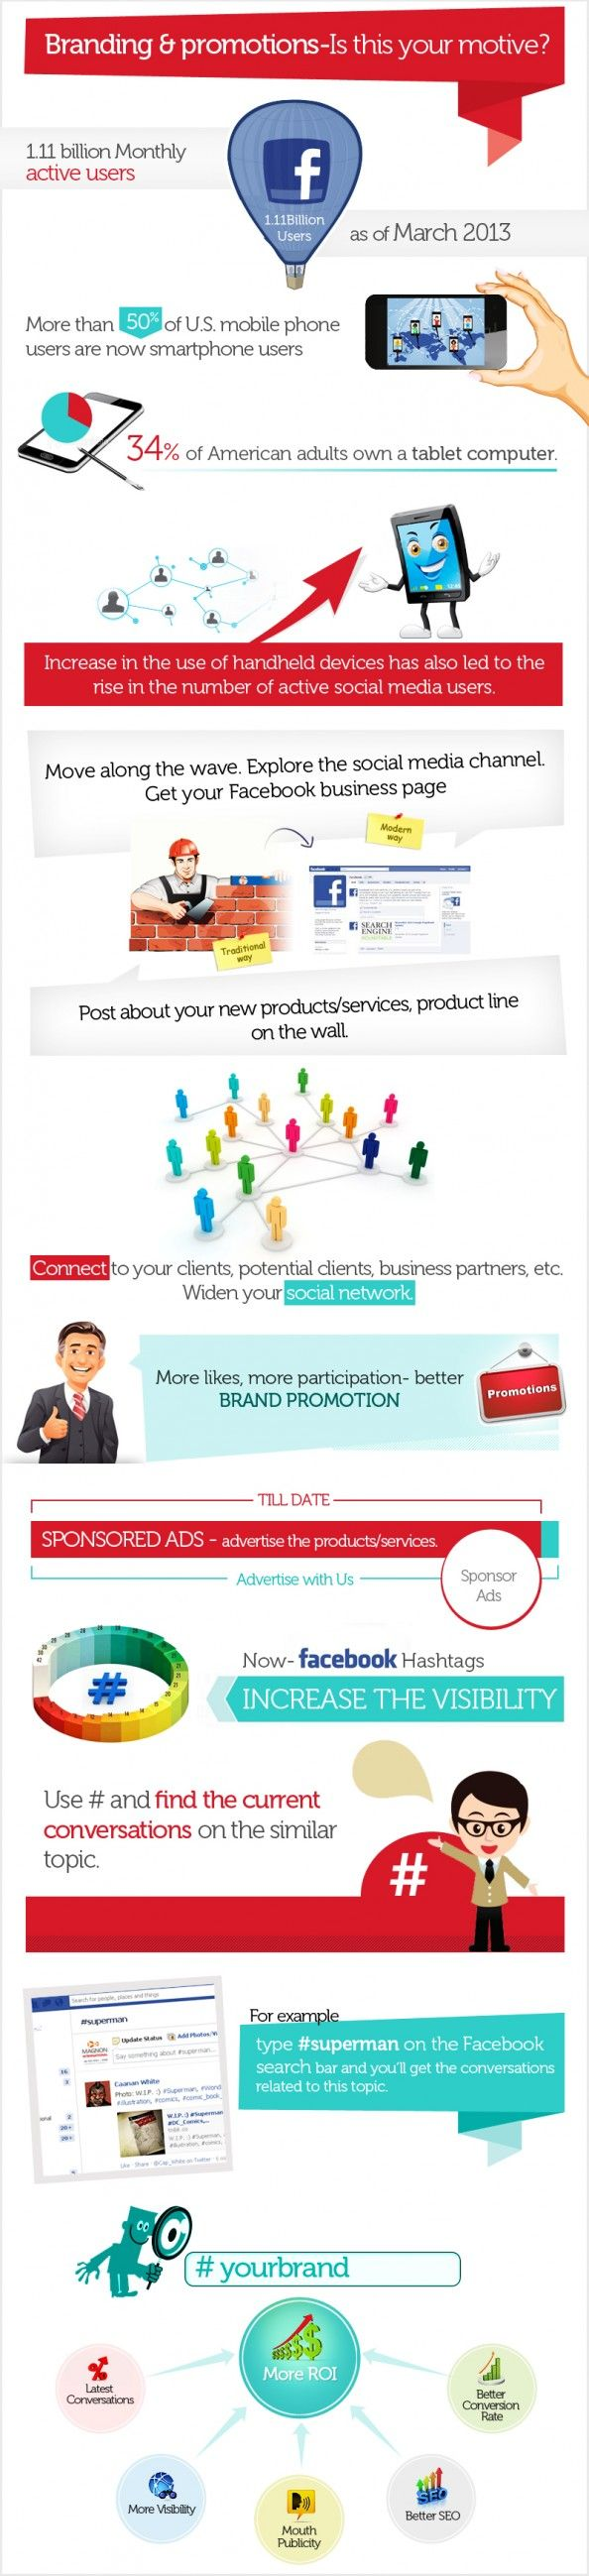 How Facebook Hashtags can be beneficial to your business? Infographic  Visit our website for comprehensive digital marketing management.  findyouridealcustomers.com.au